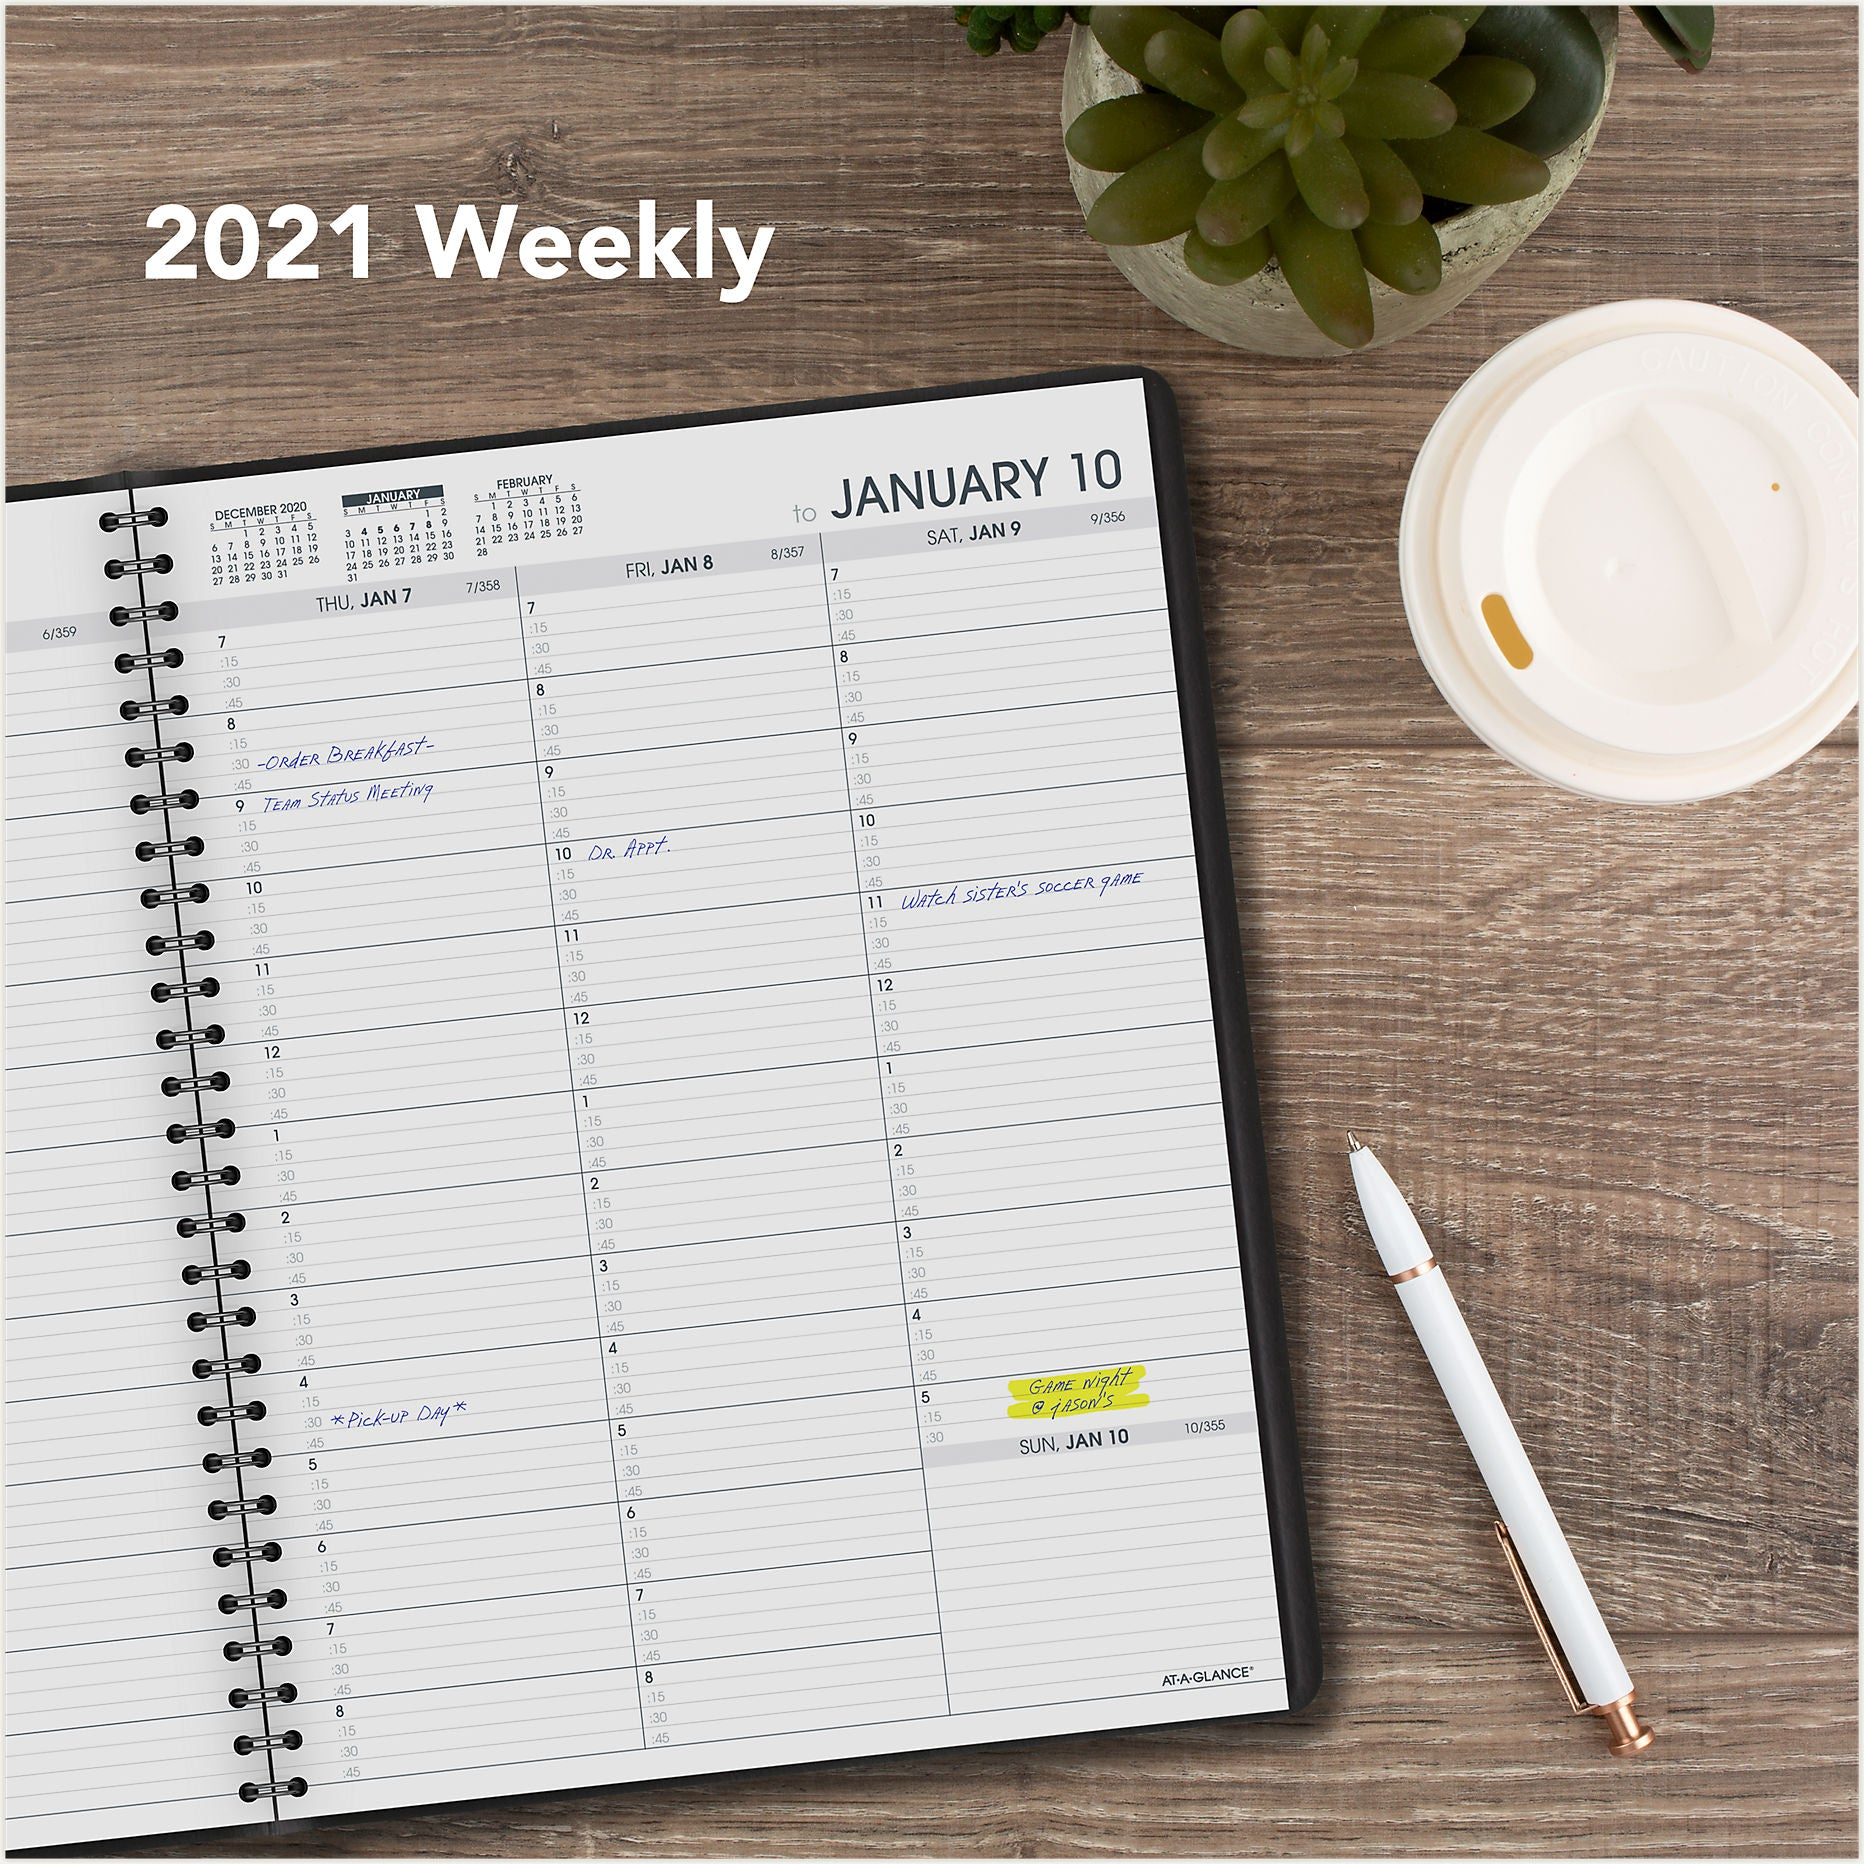 70-950-05 AT A GLANCE CALENDARS 2021